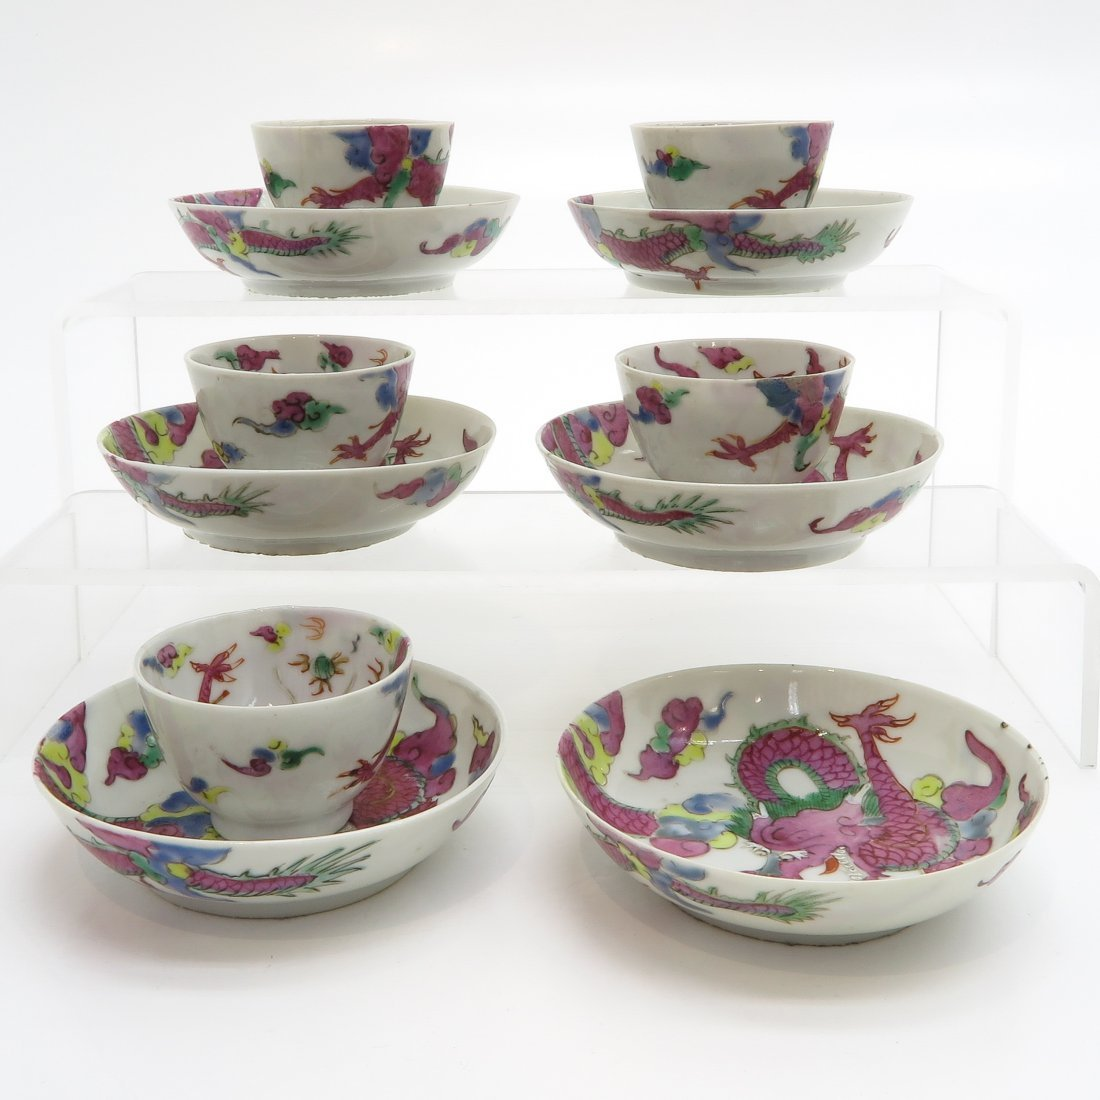 18th / 19th Century China Porcelain Cups and Saucers - 4